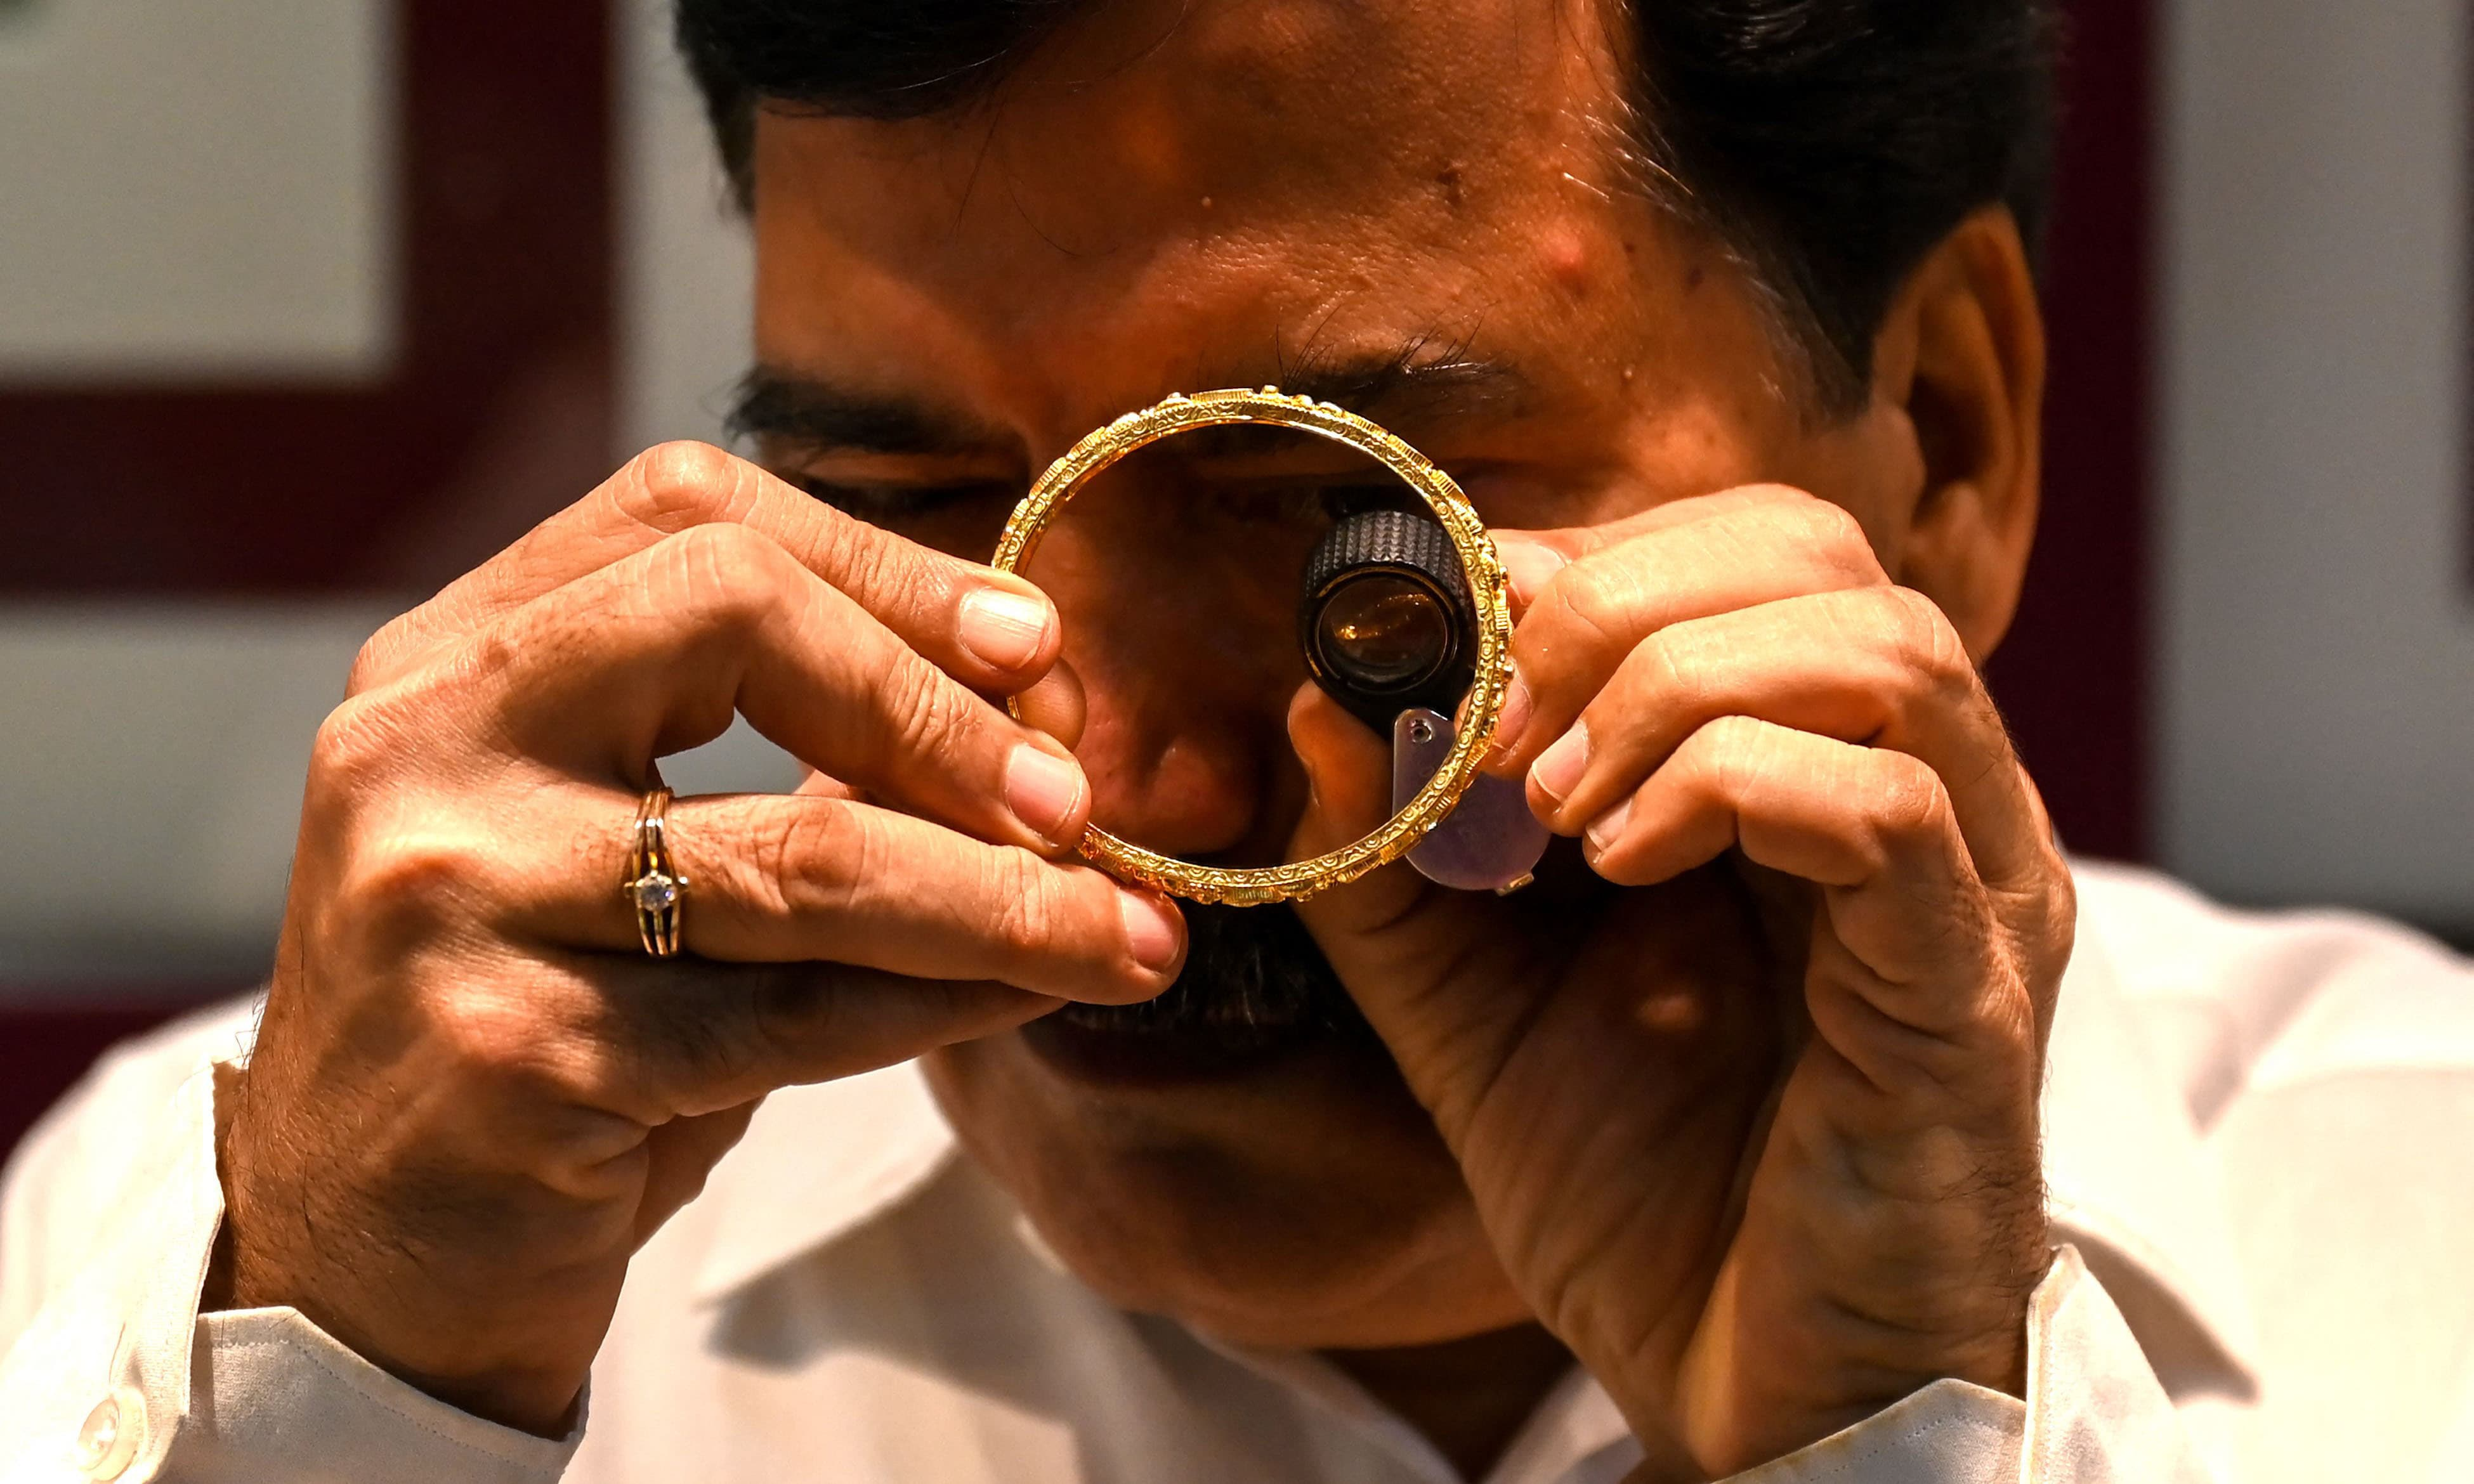 This picture taken on August 11 shows a shop manager handling gold bracelets at a jewellery shop in Mumbai. — AFP